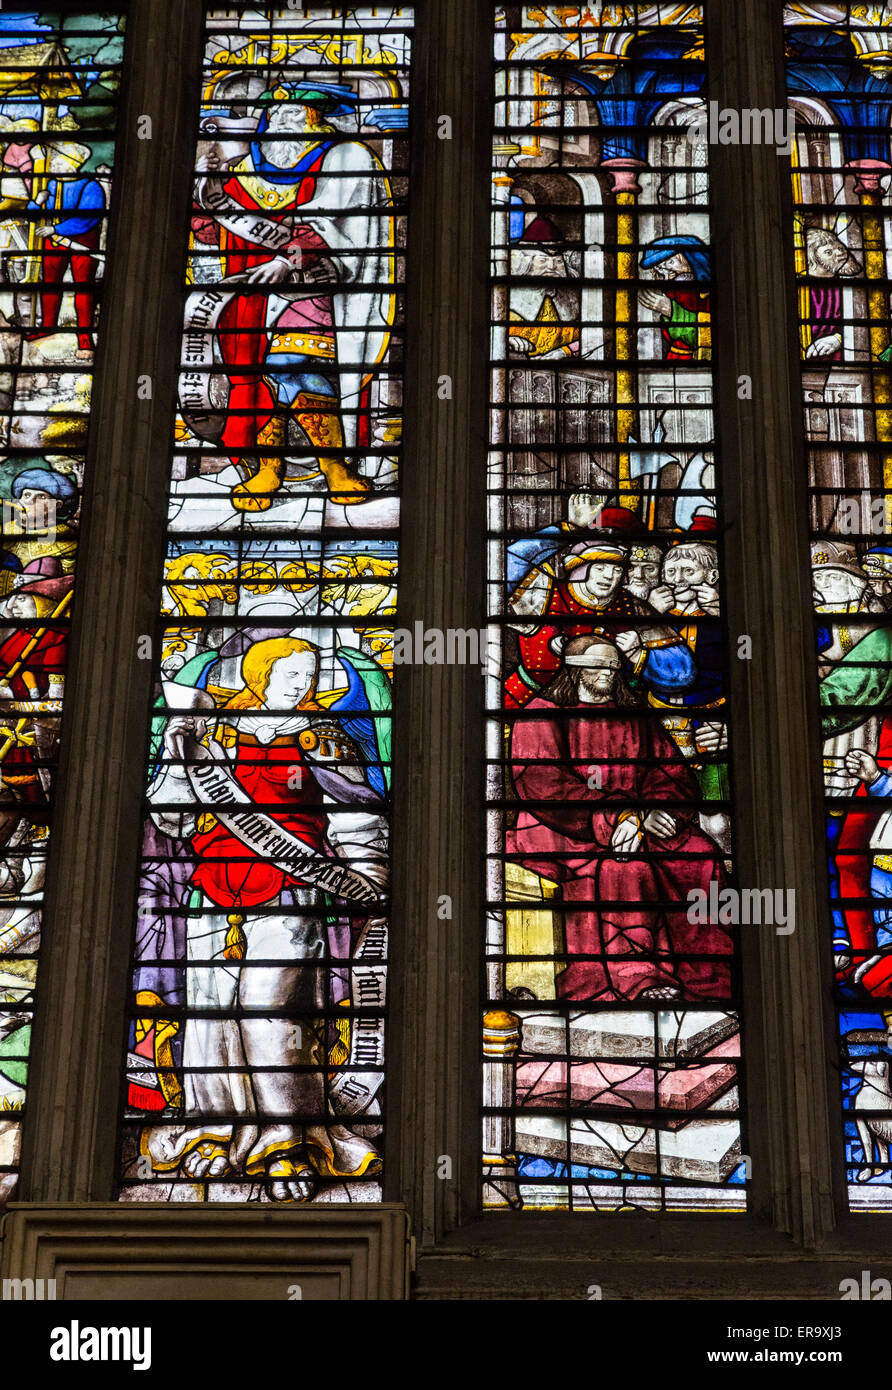 UK, England, Cambridge.  King's College Chapel, 16th.-century Stained Glass Window showing the Mocking of Christ. - Stock Image